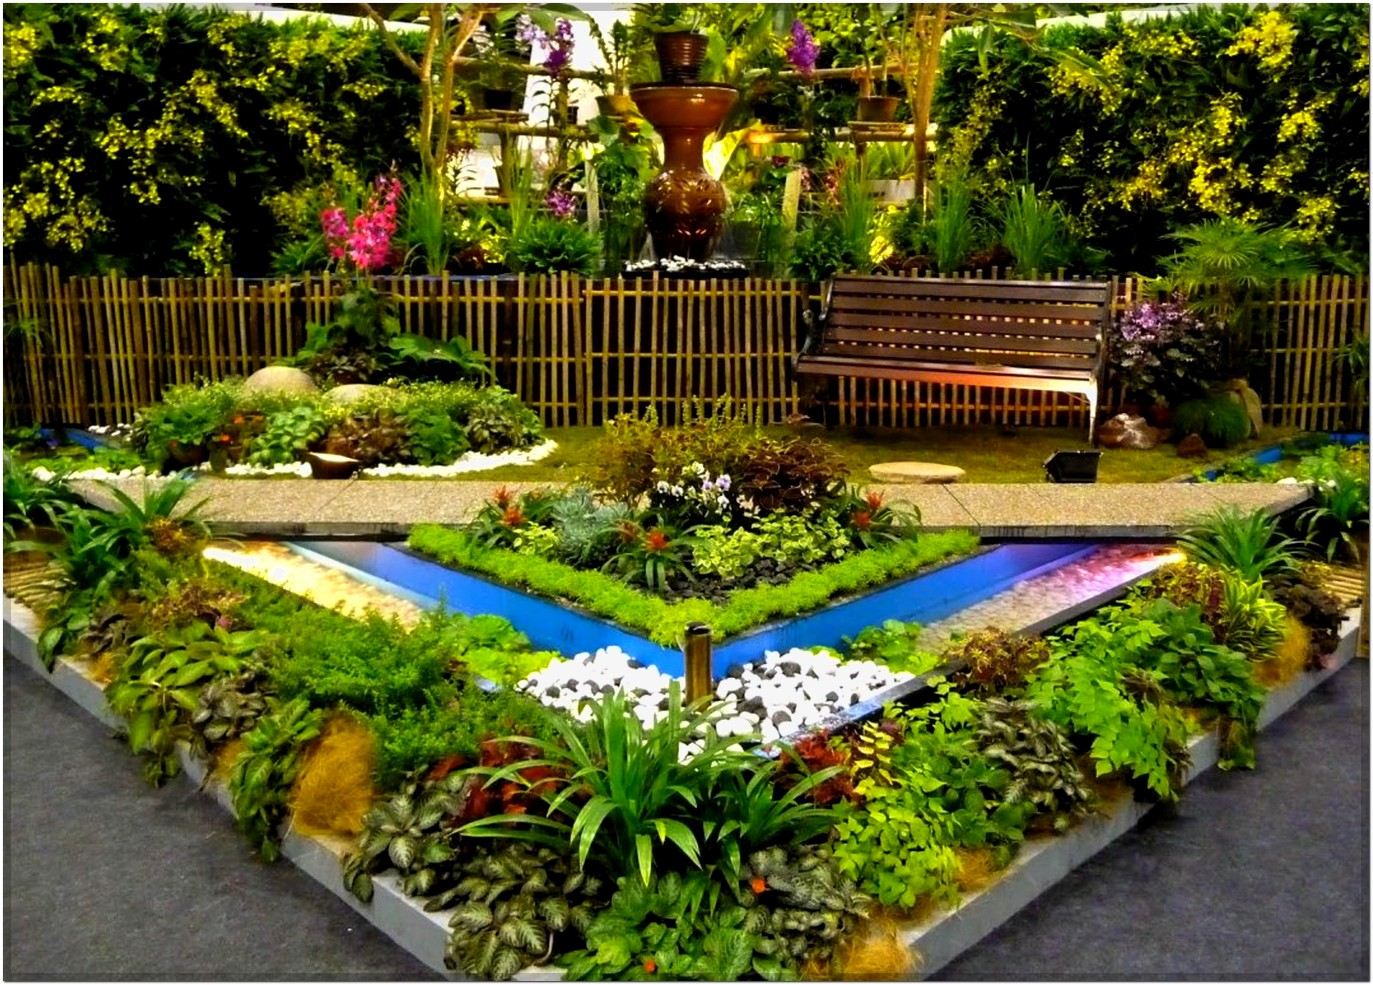 Garden Design Ideas For Small Triangular Gardens : Garden ideas for the diy project making adorable small